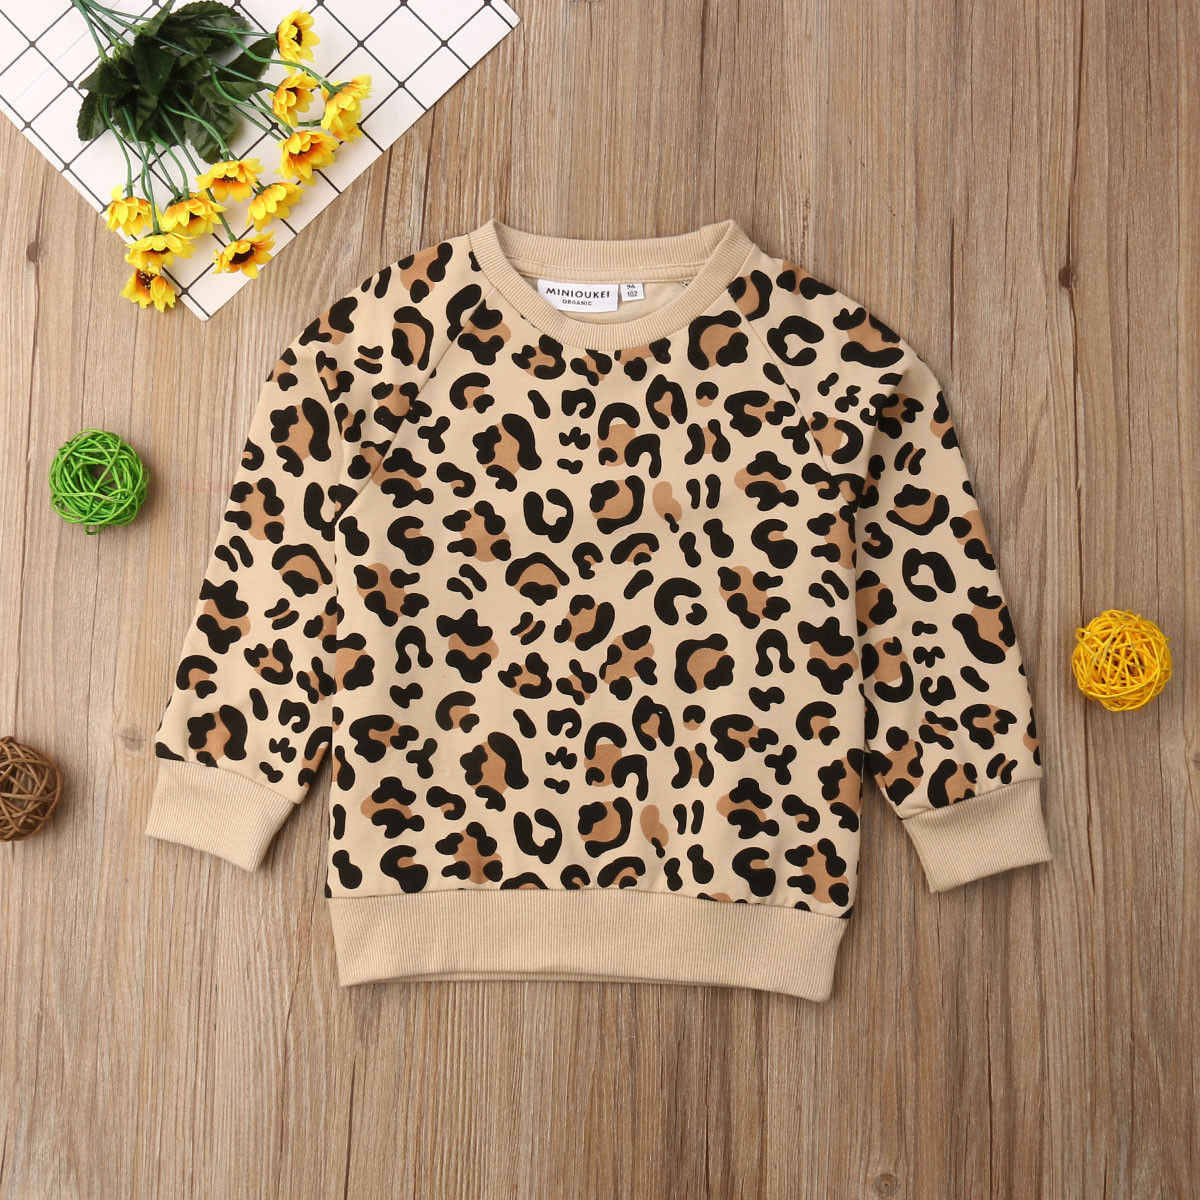 Toddler Kids Baby  Boy  Leopard Print Tops Sweatshirts Coat Jacket Fashion